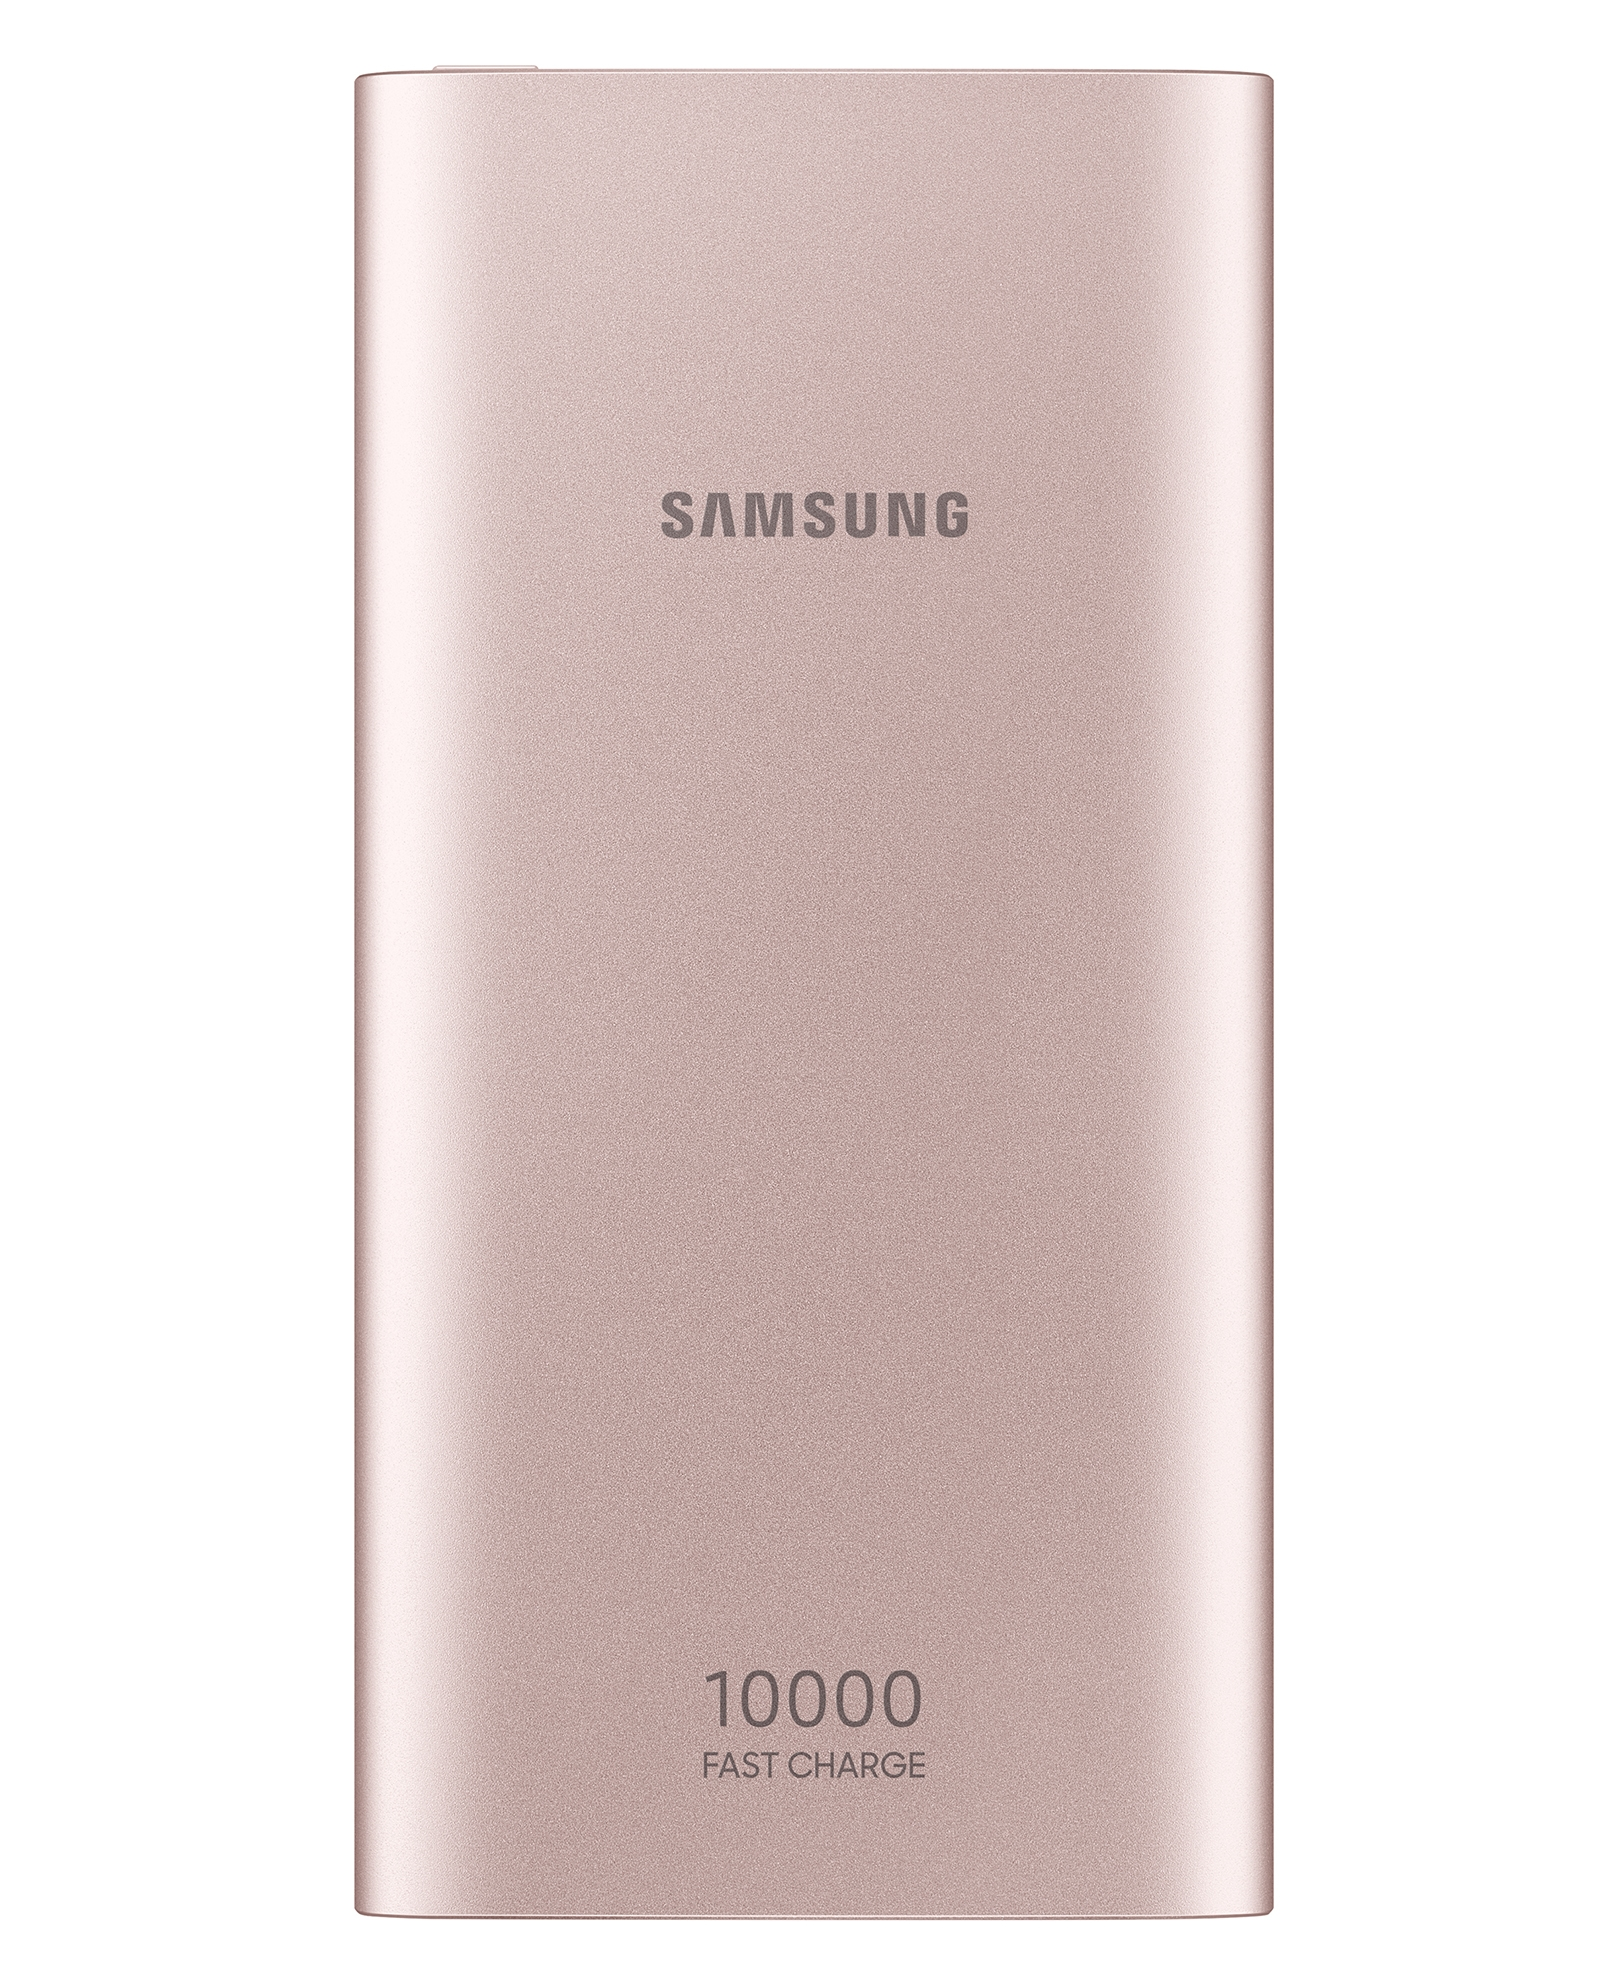 Samsung 10,000 mAh Portable Battery with USB-C Cable, Pink